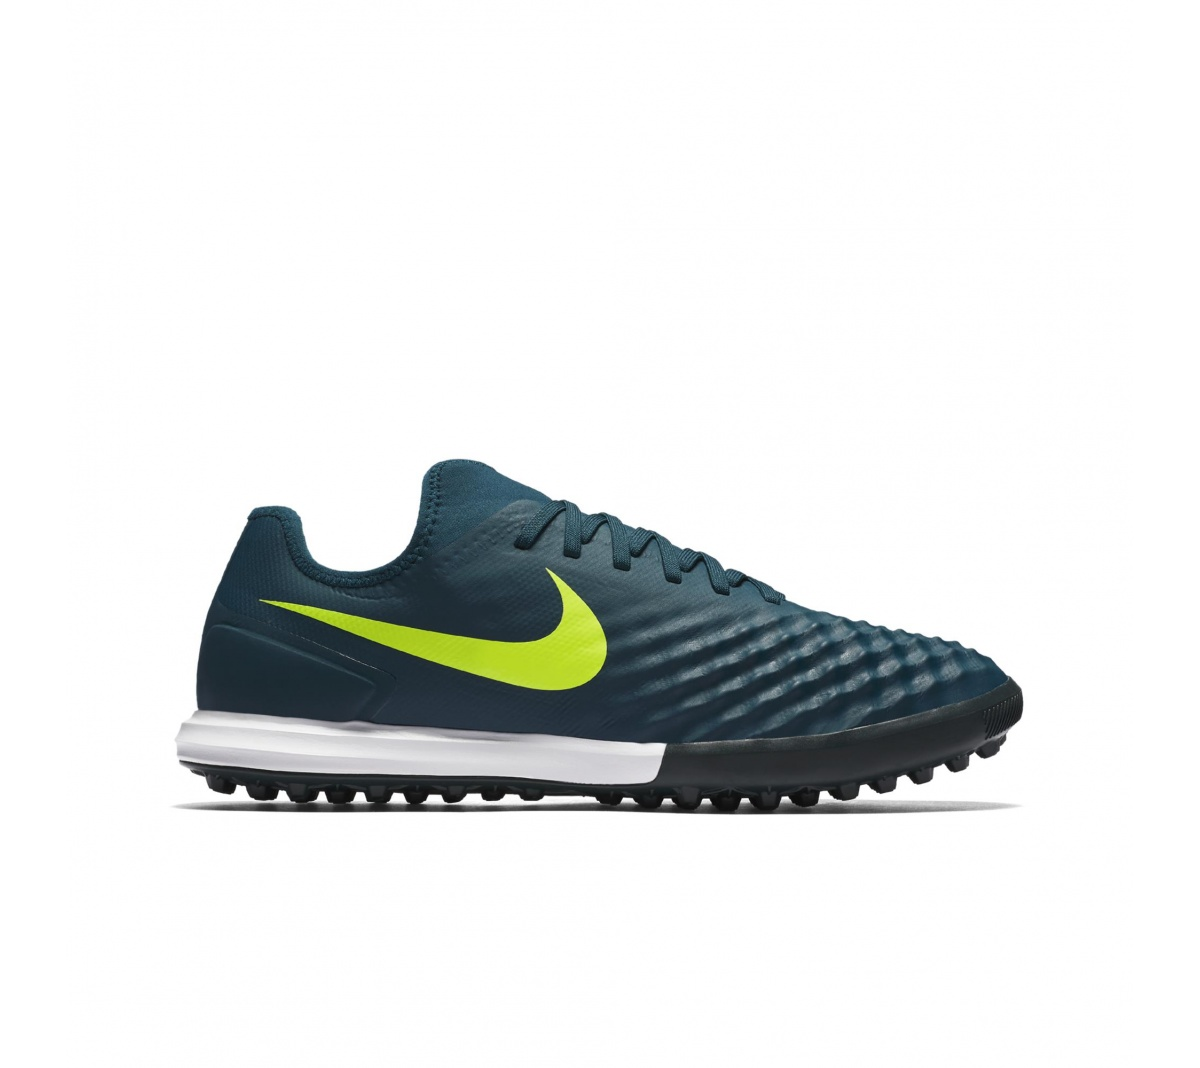 c03f52666d Chuteira Nike Magistax Finale Society New Verde - Mundo do Futebol